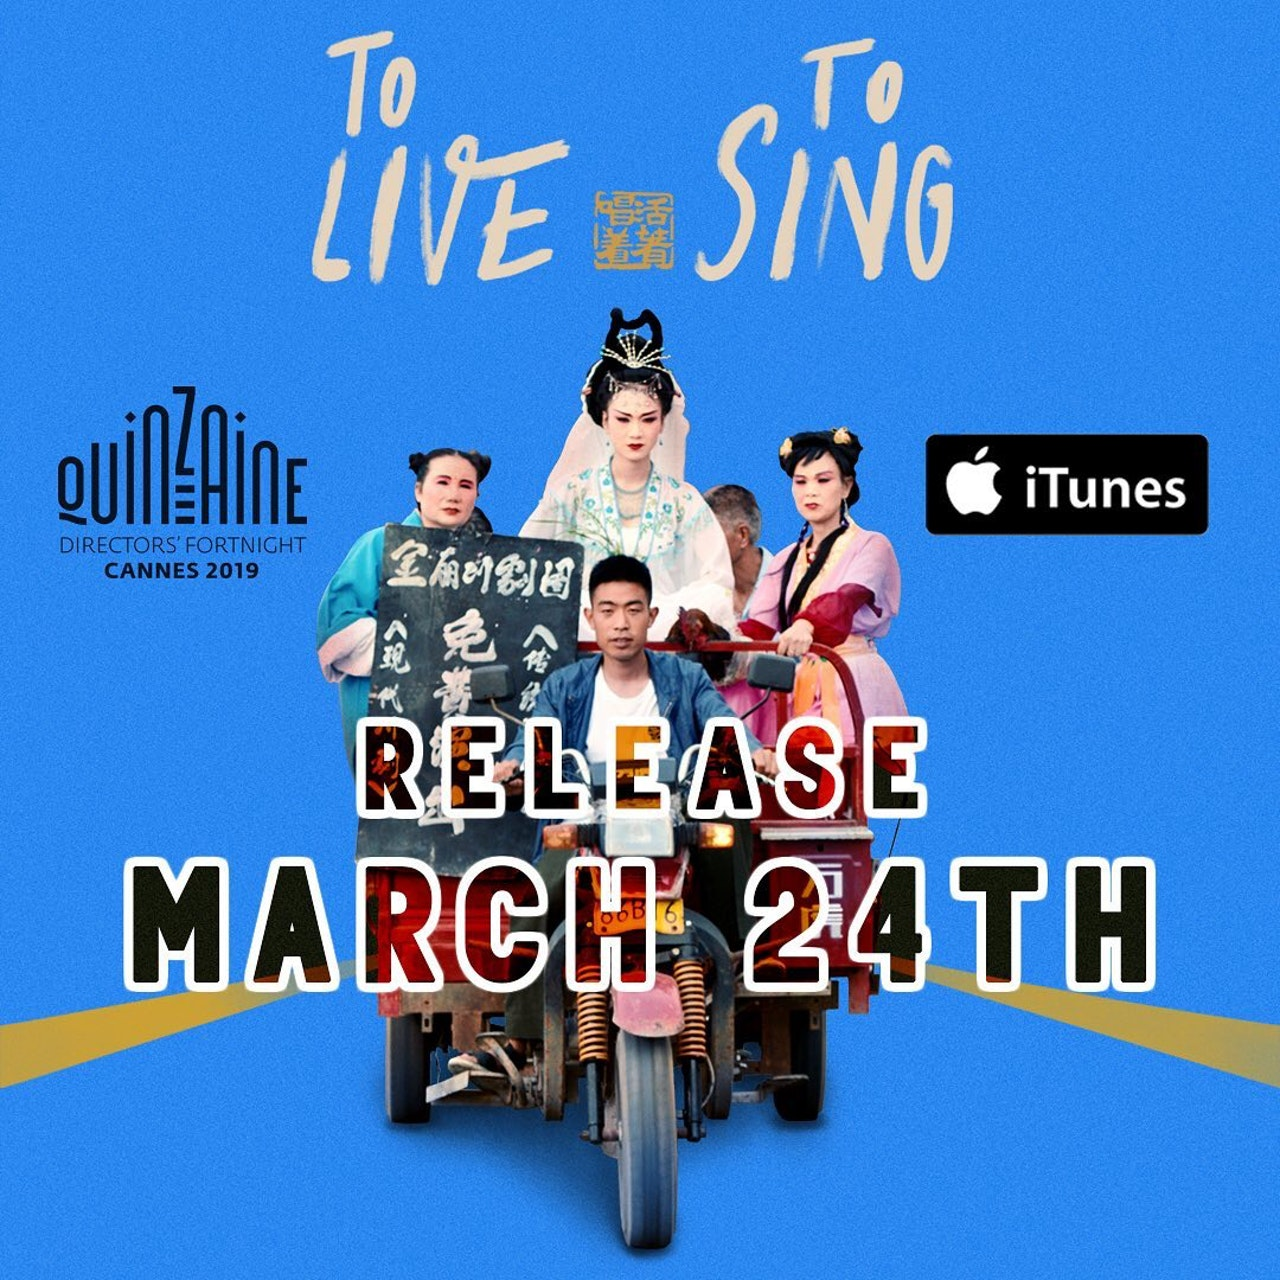 'To Live To Sing' is now available on Canadian iTunes & Apple TV